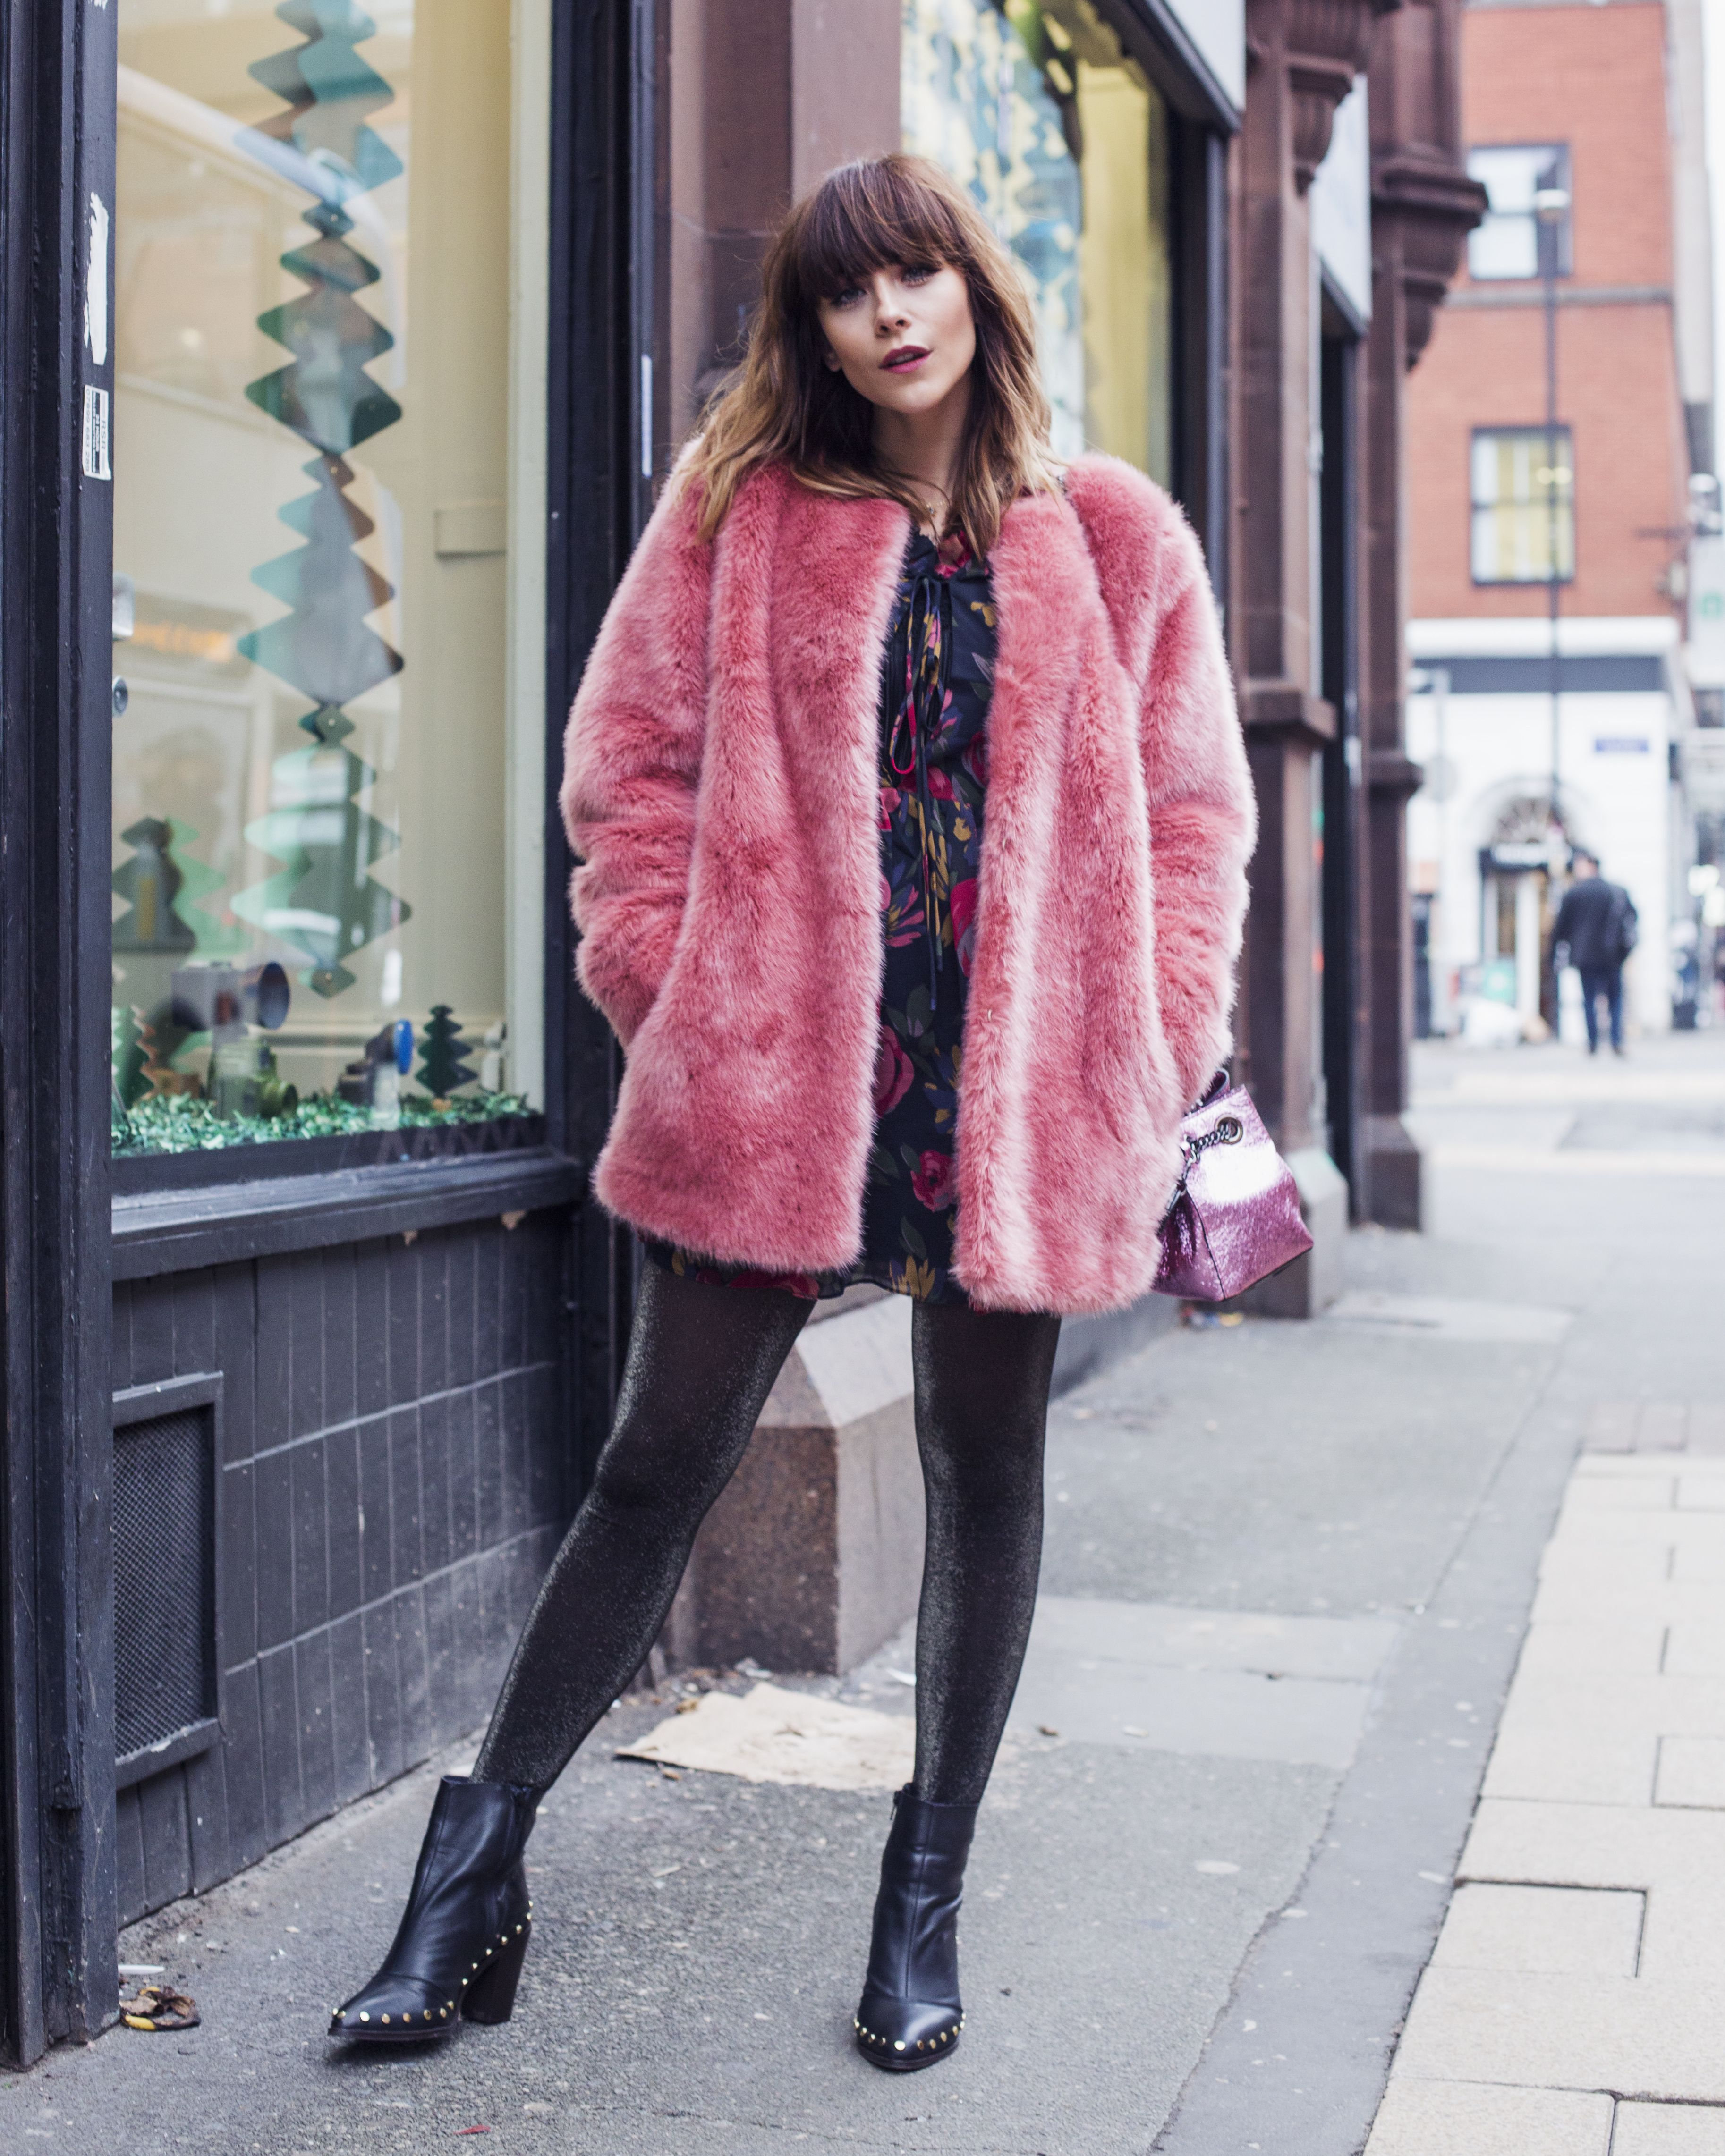 406eb305 Pink coat and glittery tights! Megan Ellaby | Eclectic fashion ...